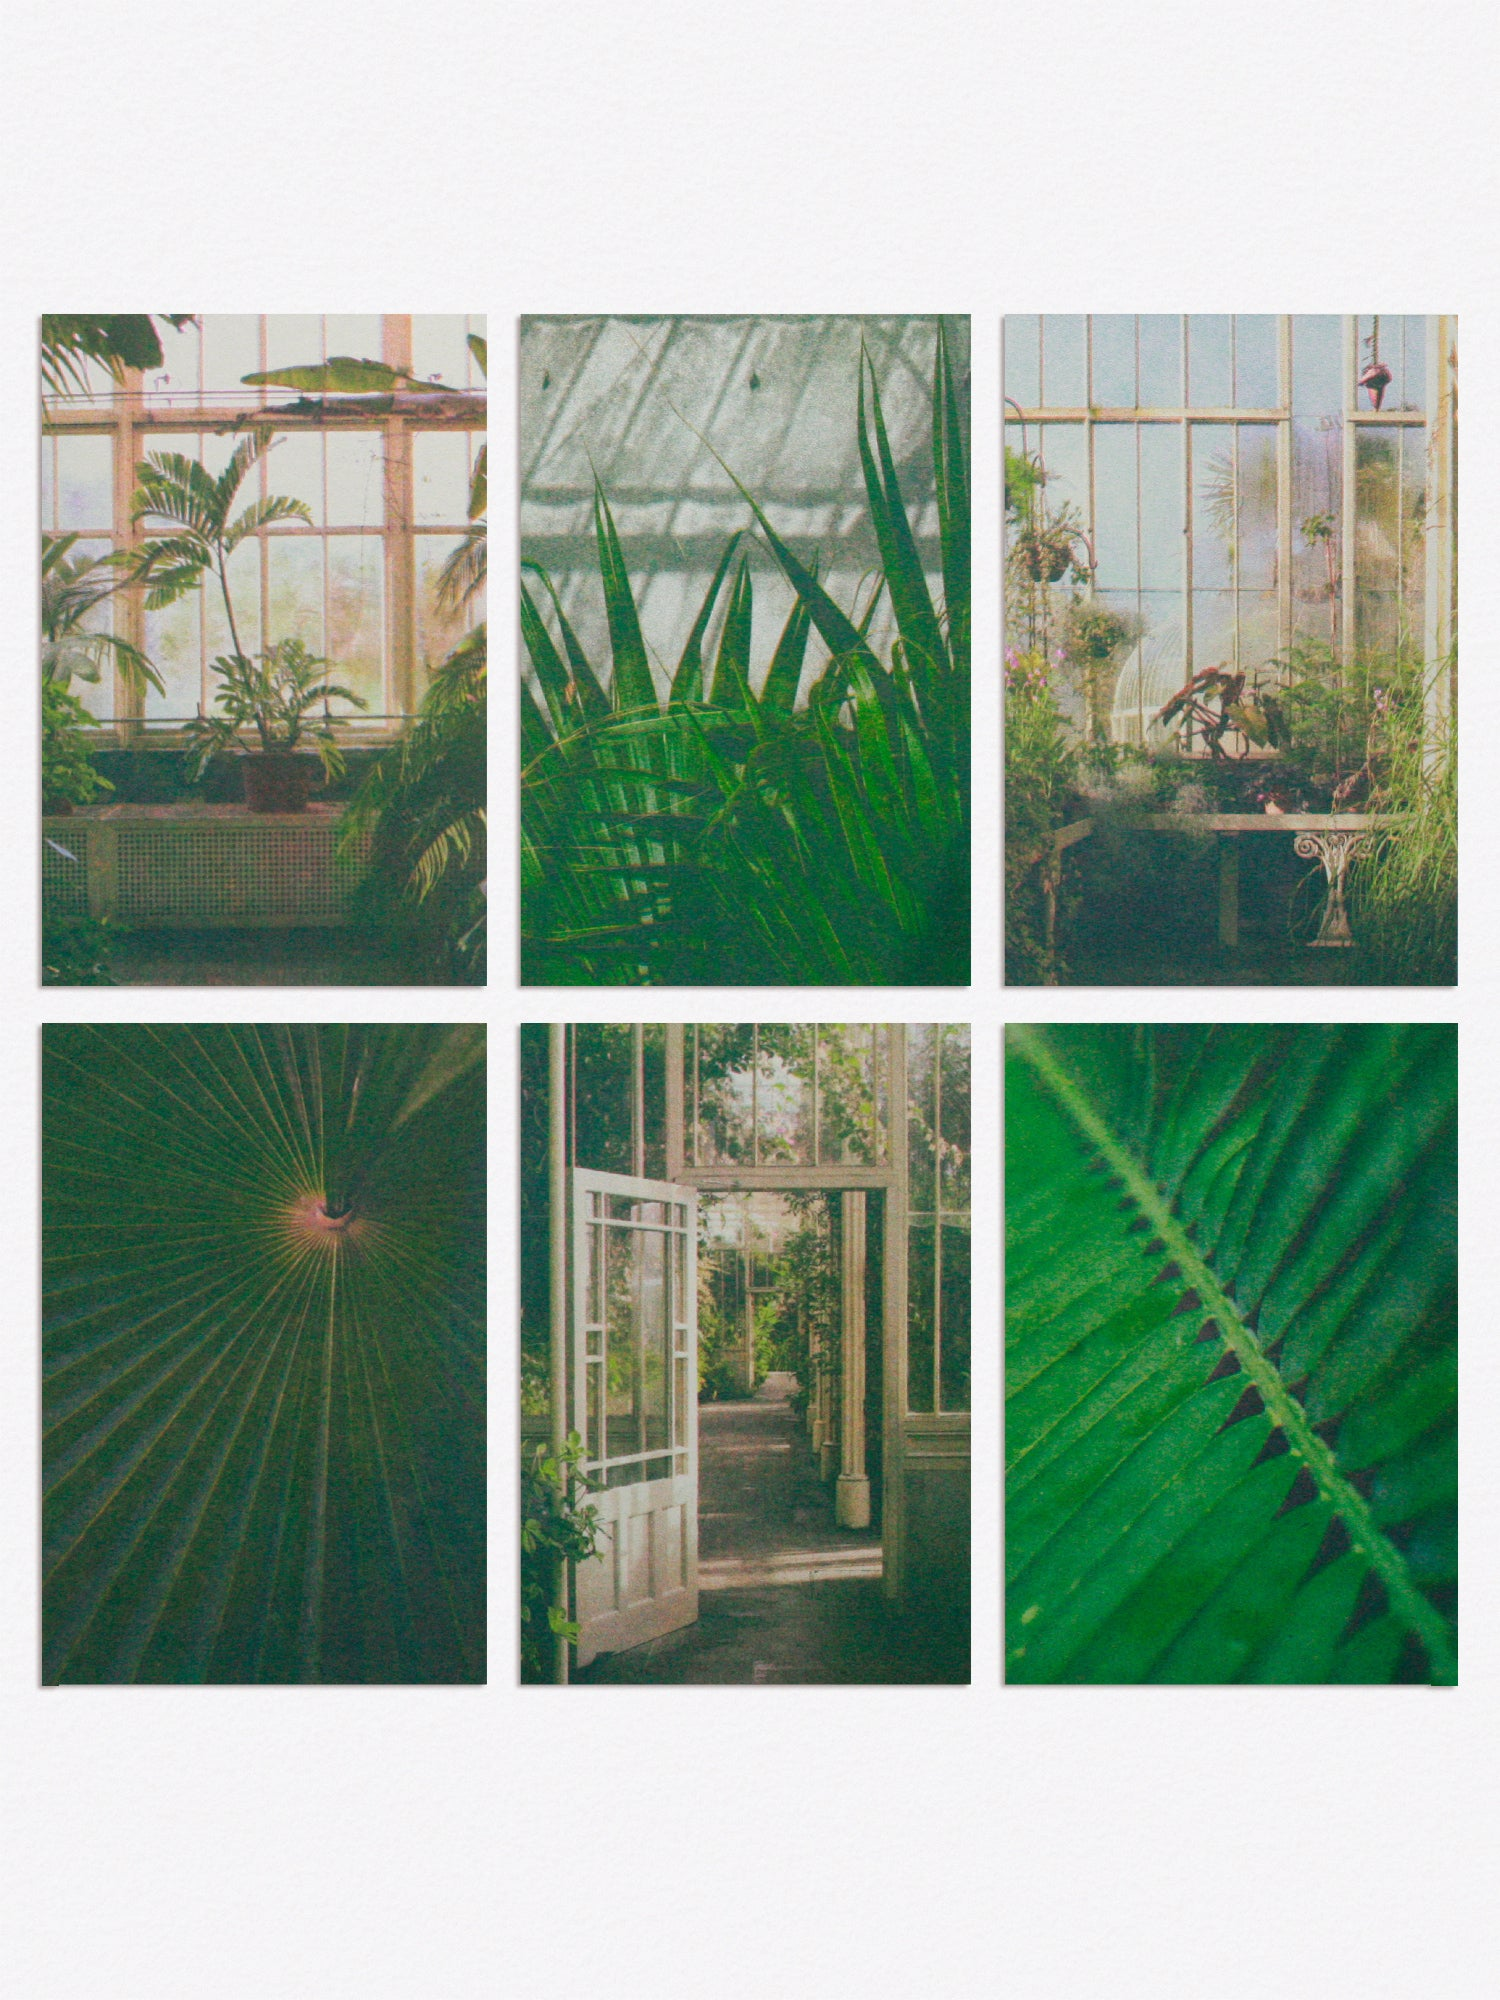 Postcards featuring photographies taken in botanic gardens in Dublin.